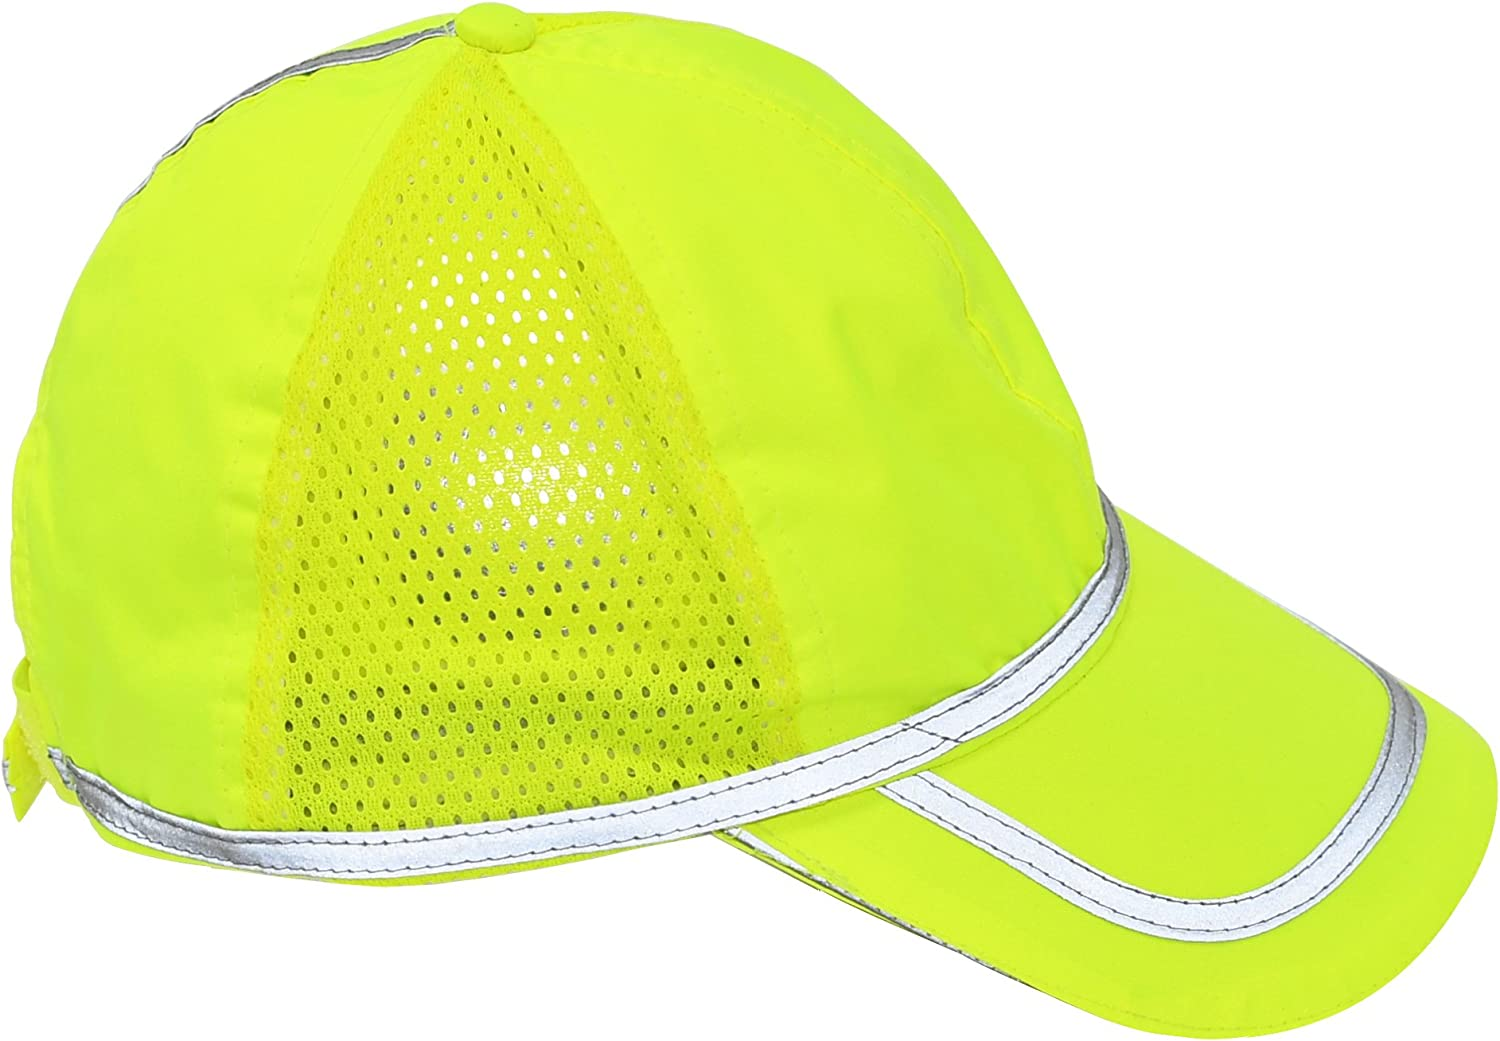 Home-X Reflective Yellow Safety Cap with Gray Piping